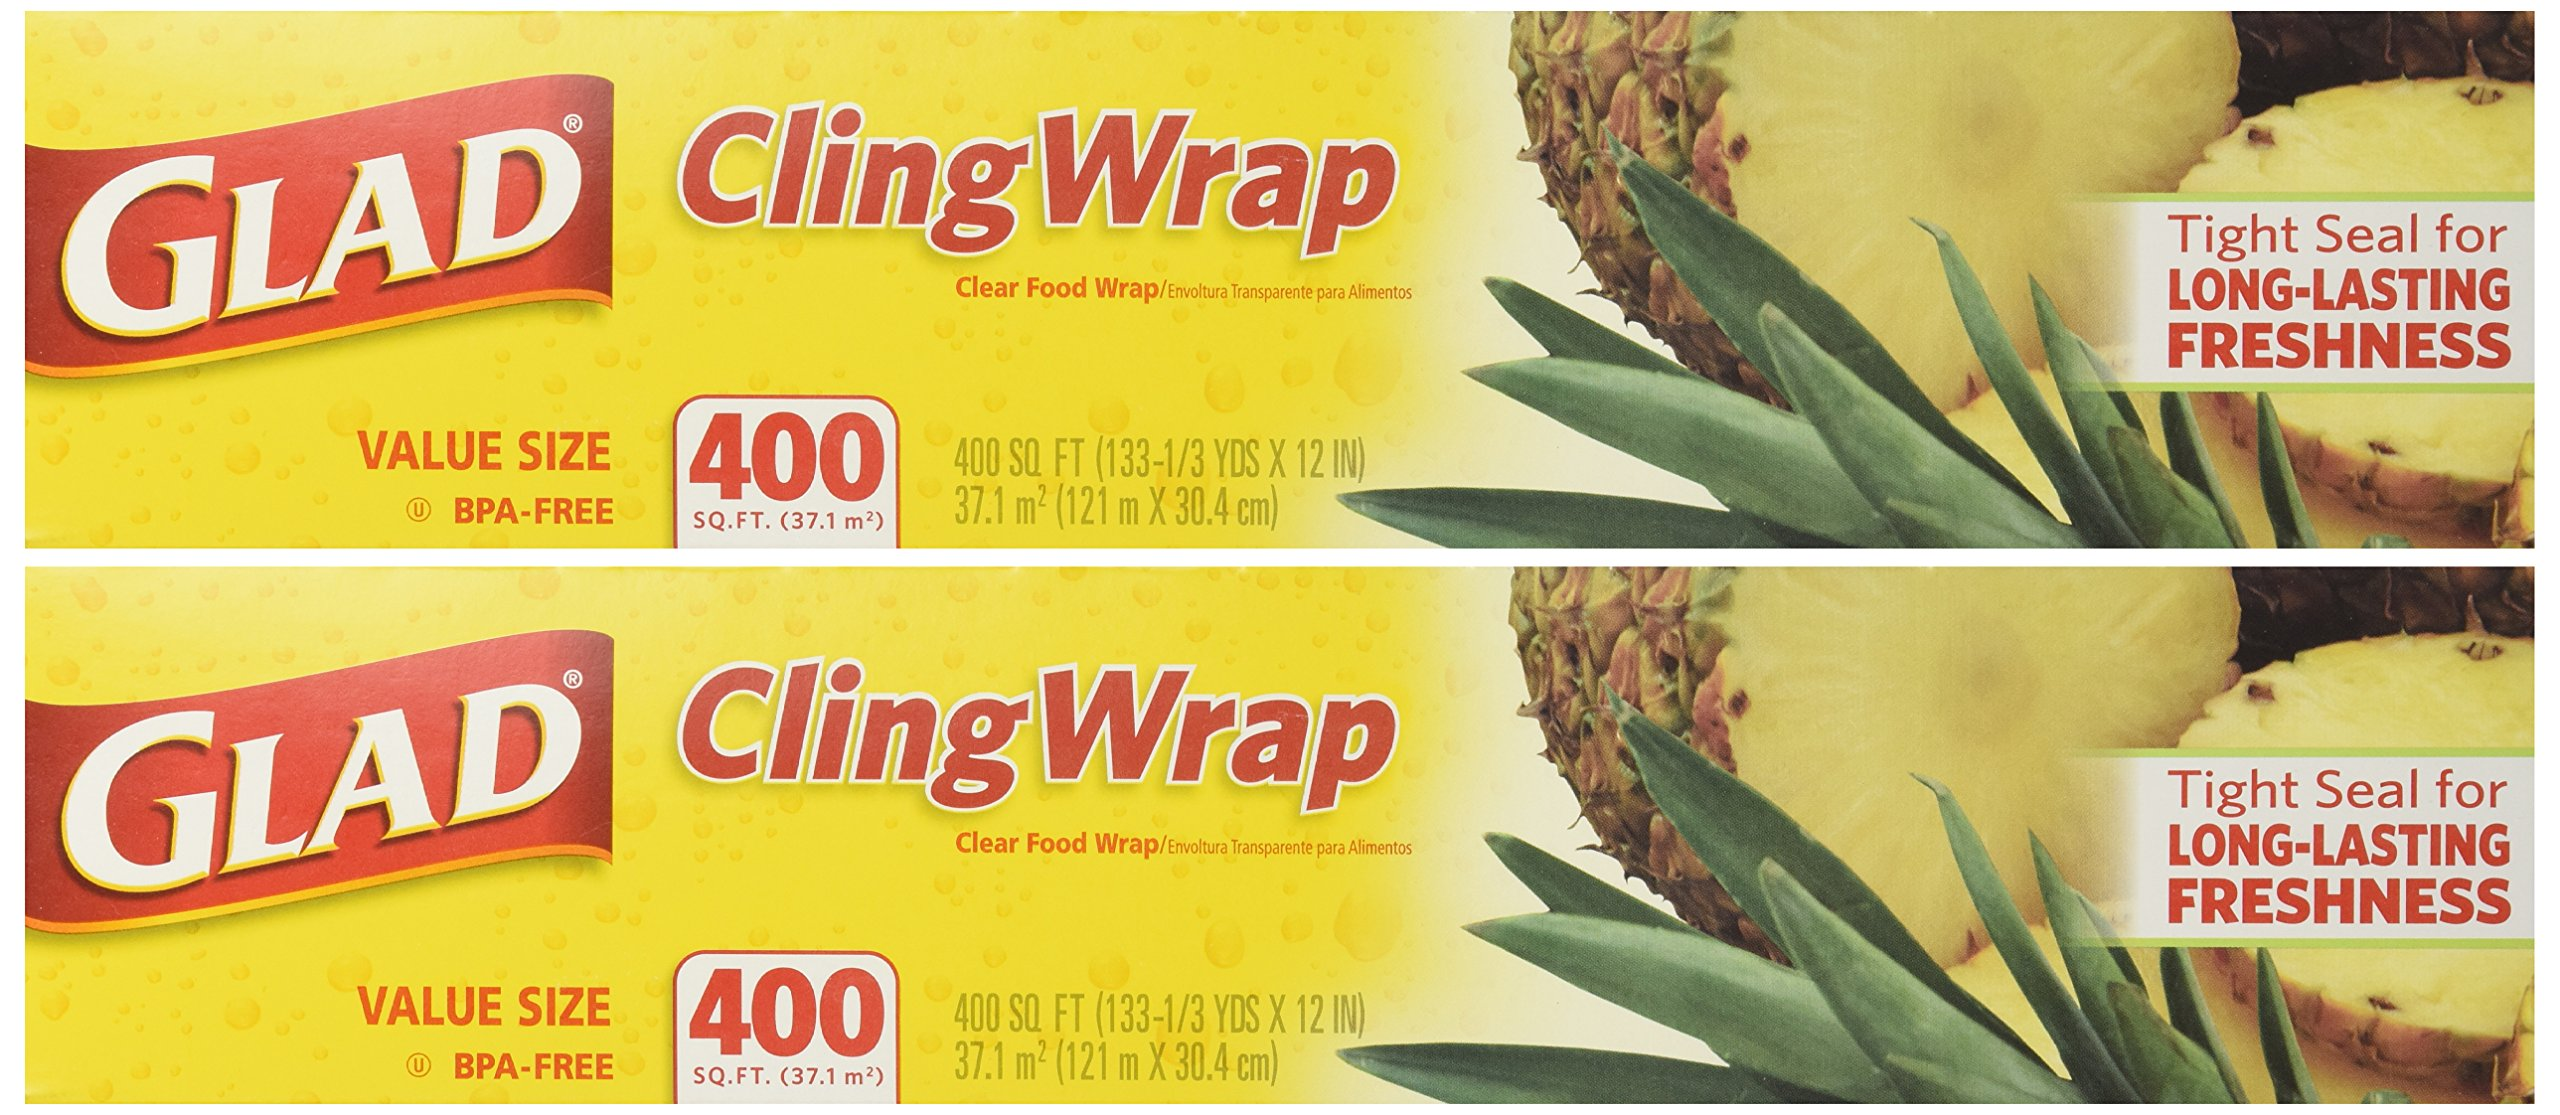 Glad Cling Plastic Wrap, 400 Square Foot Roll (Pack of 2 Rolls, Total 800 Sqf) by Glad